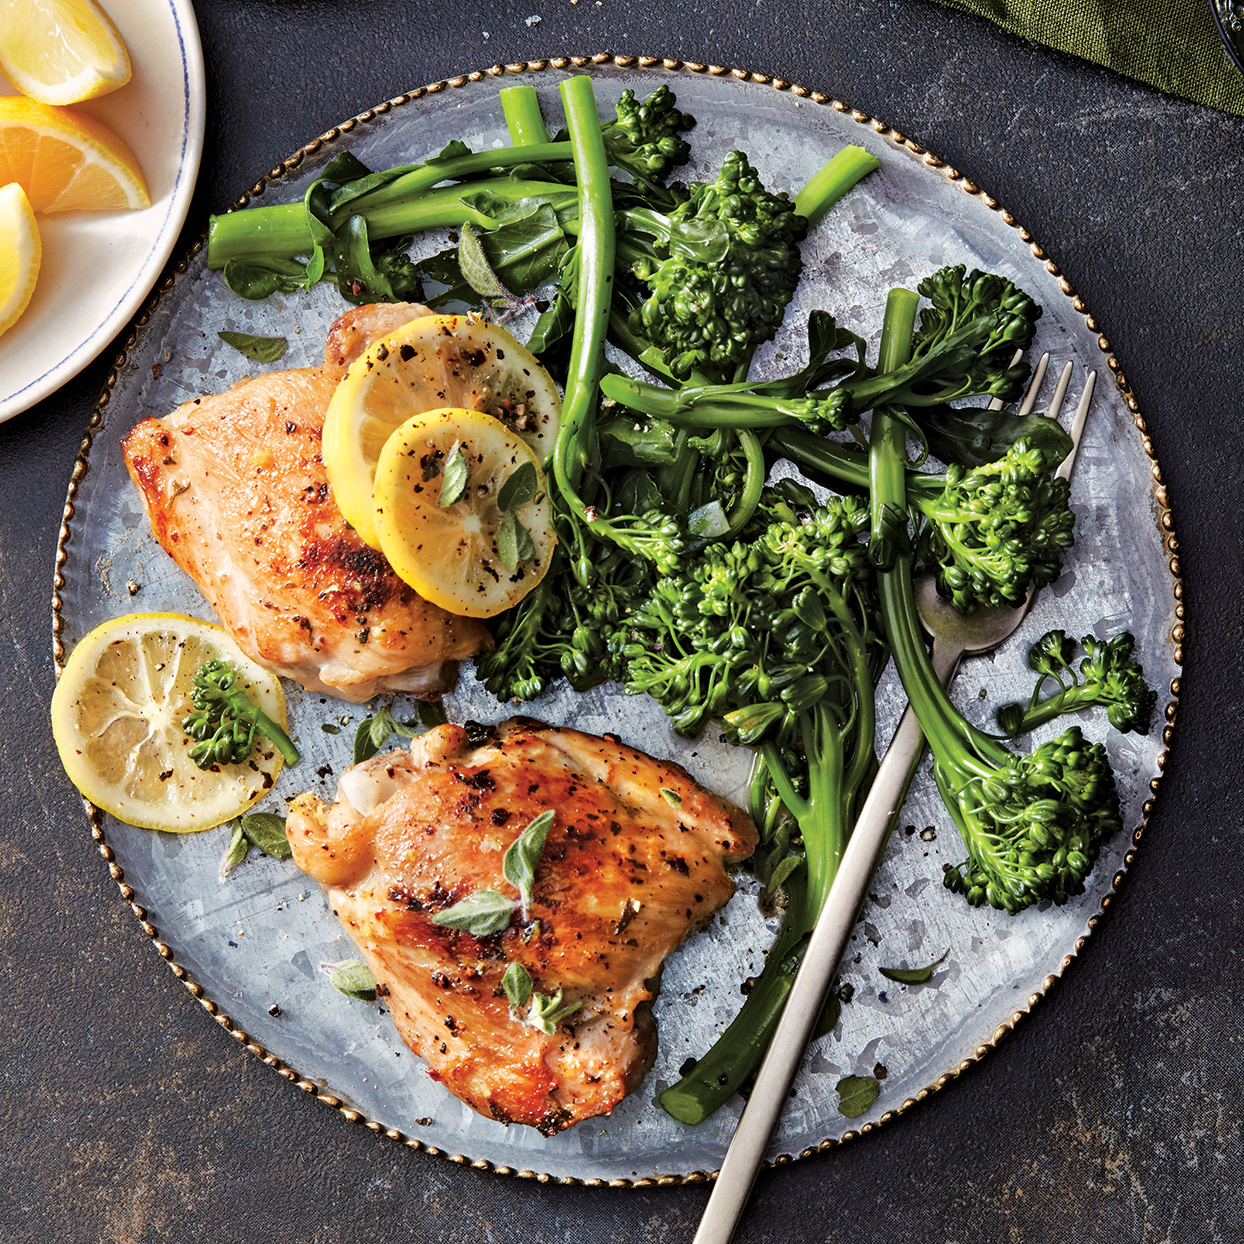 Slow-Cooker Lemon-Pepper Chicken Thighs with Broccolini